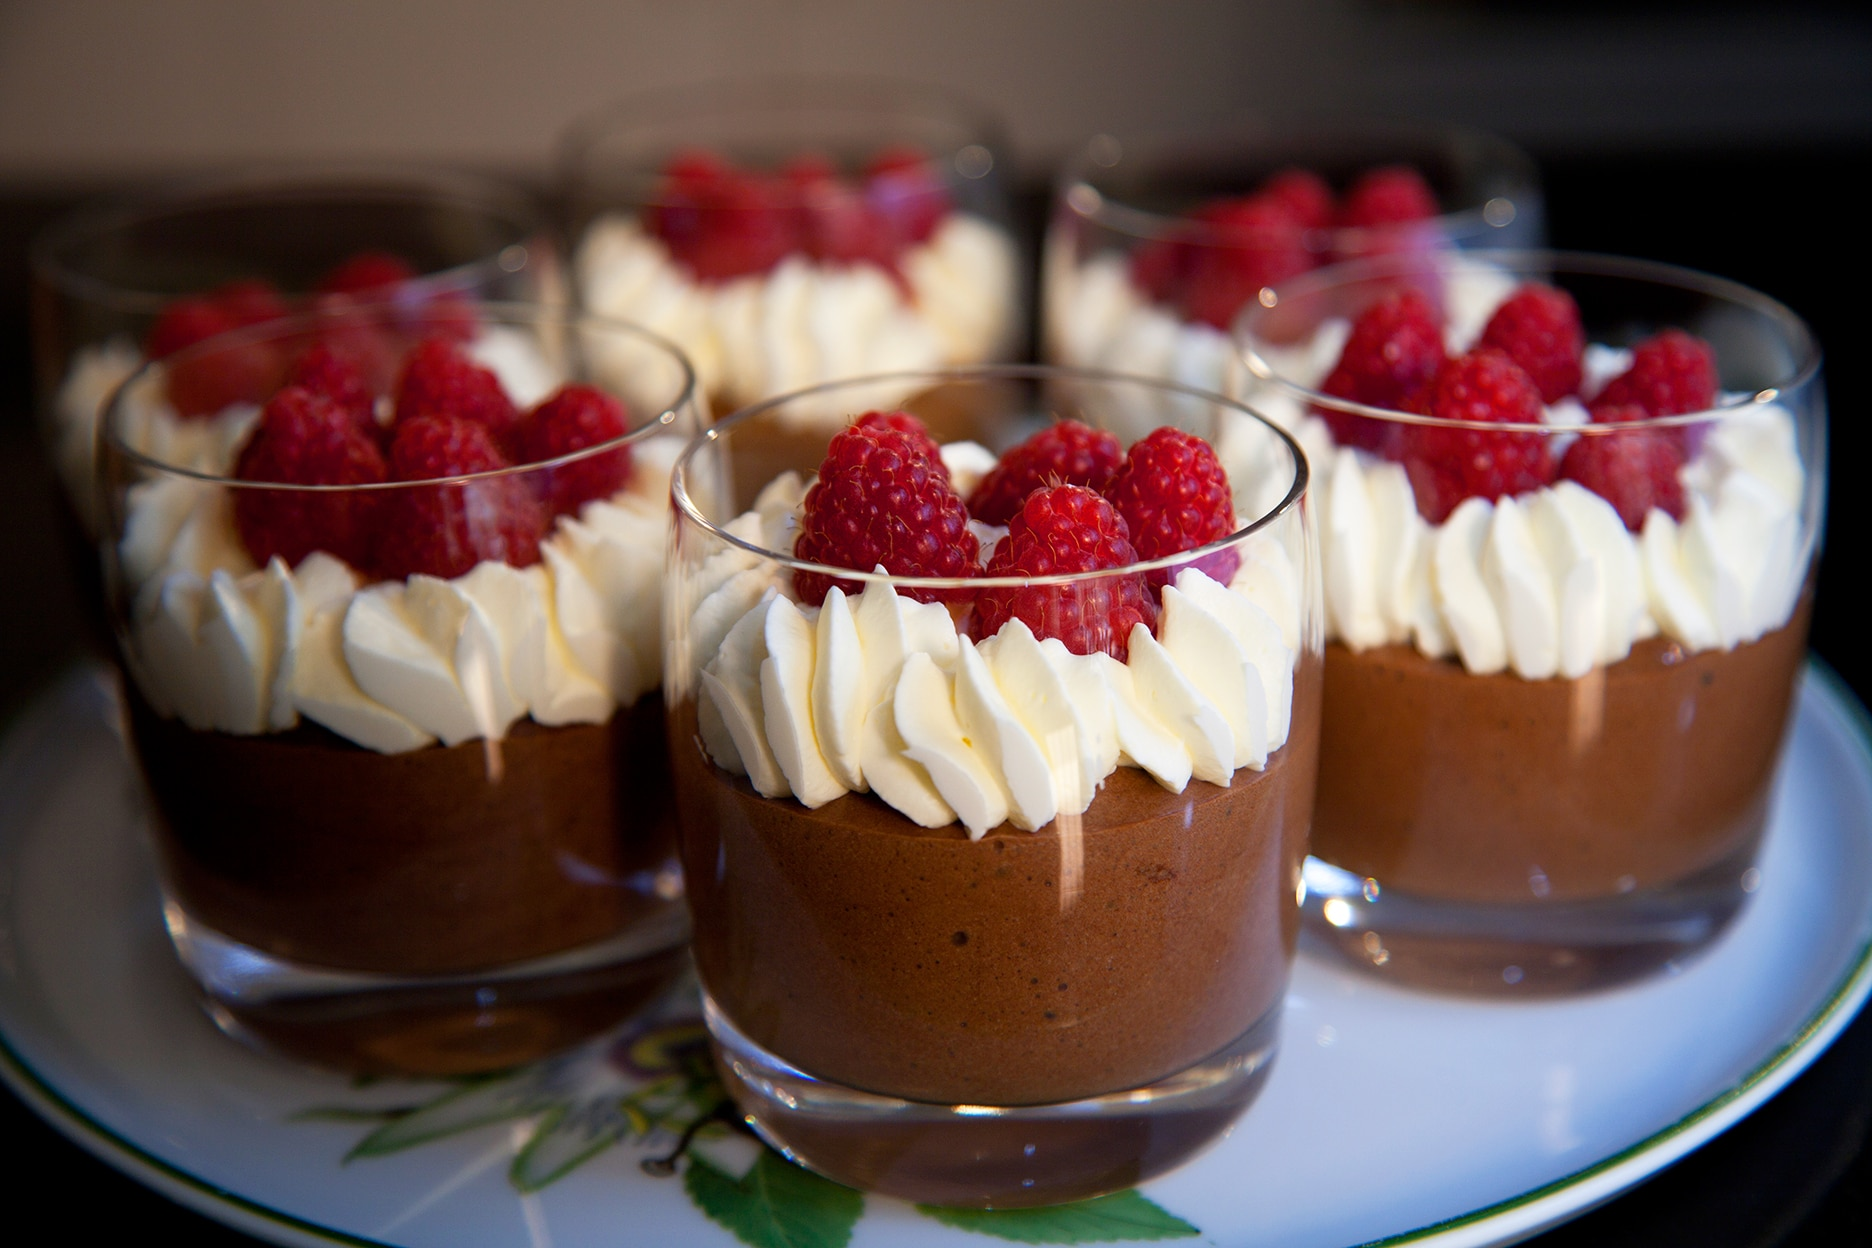 Belgian Chocolate Mousse Sbsau Food Recipes